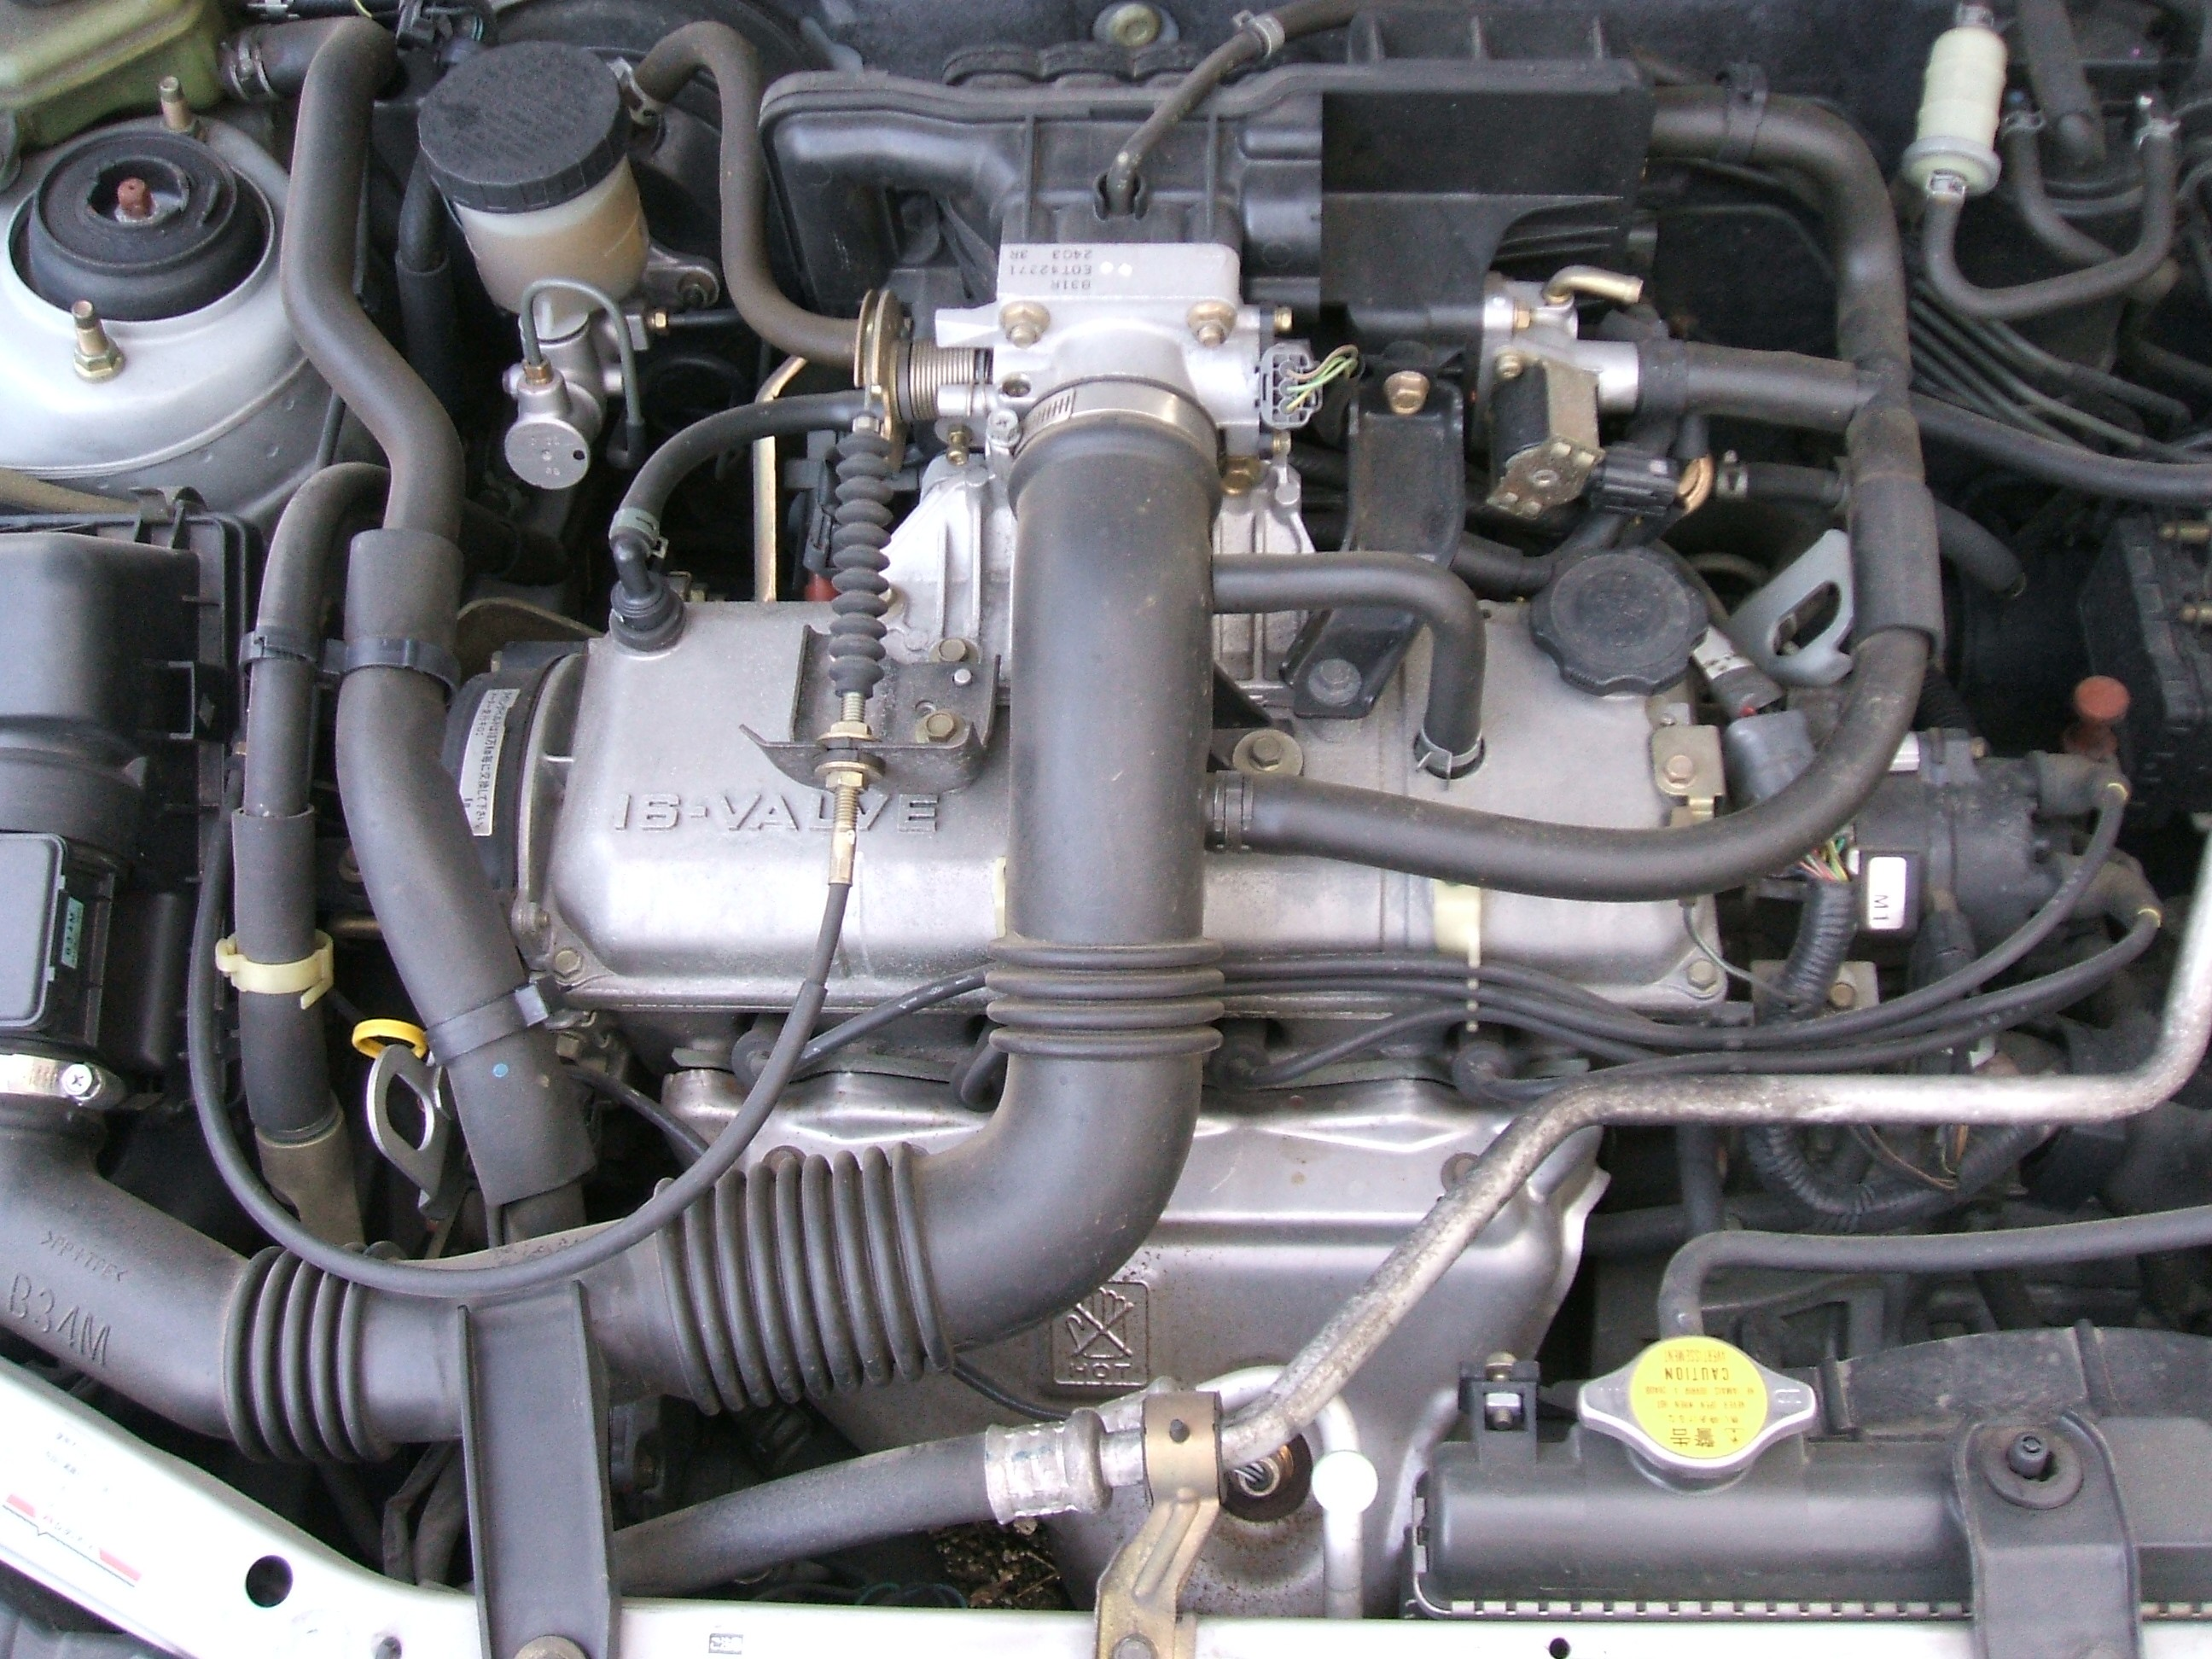 mazda 121 (mk.1) - 1987, 1988, 1989, 1990, 1991 - autoevolution kia pride gtx engine diagram 2005 kia sorento v6 engine diagram